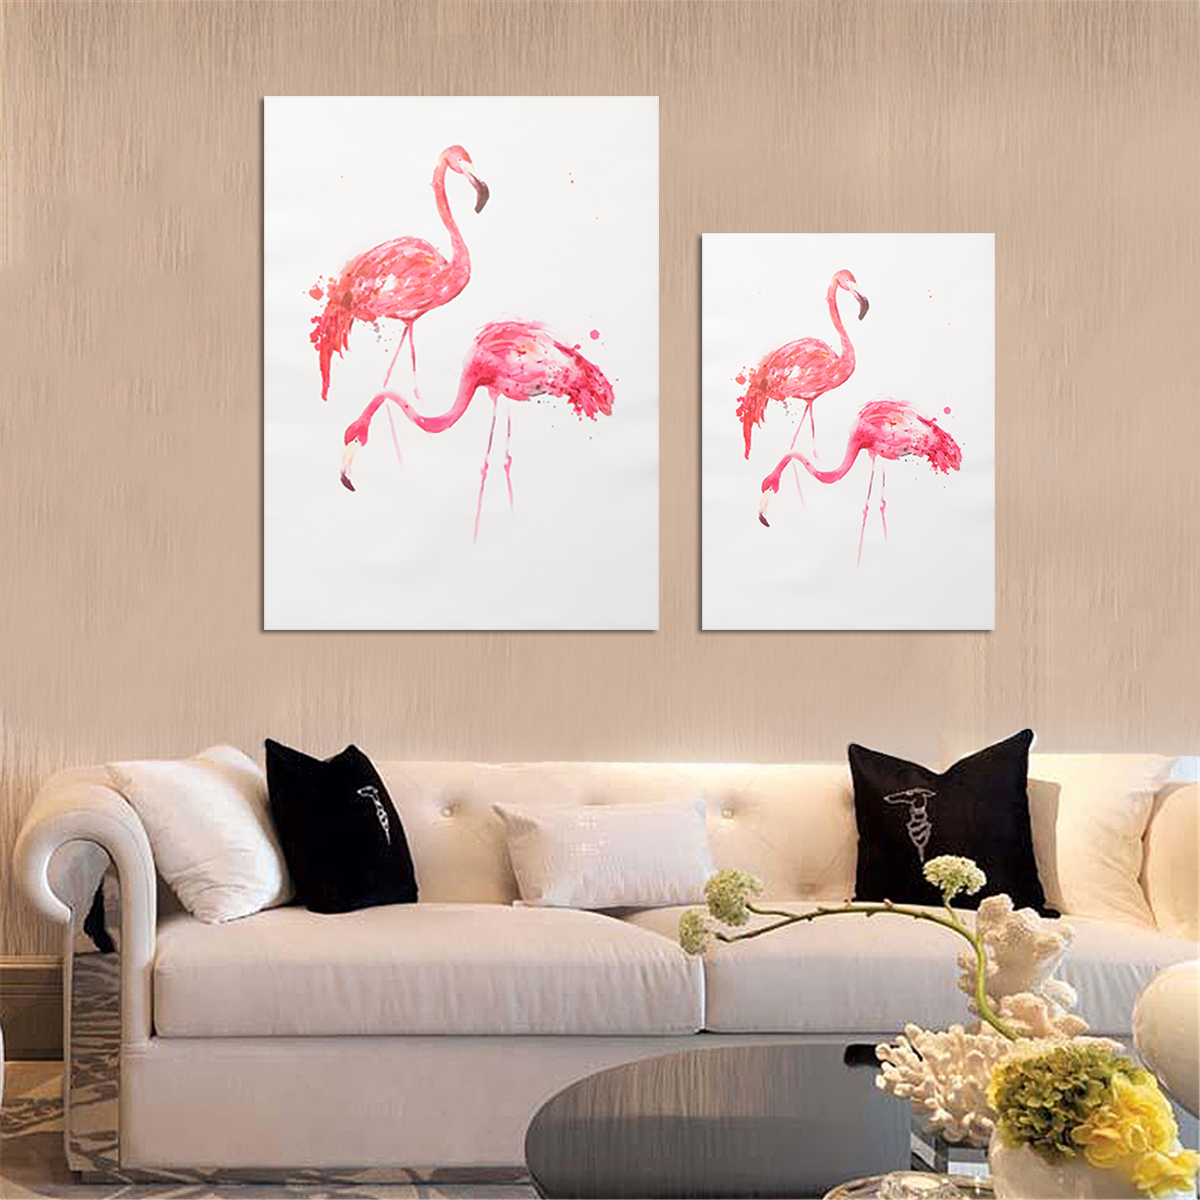 Unframed Modern Flamingo Art Canvas Oil Painting Print Wall Hanging Poster Decorations